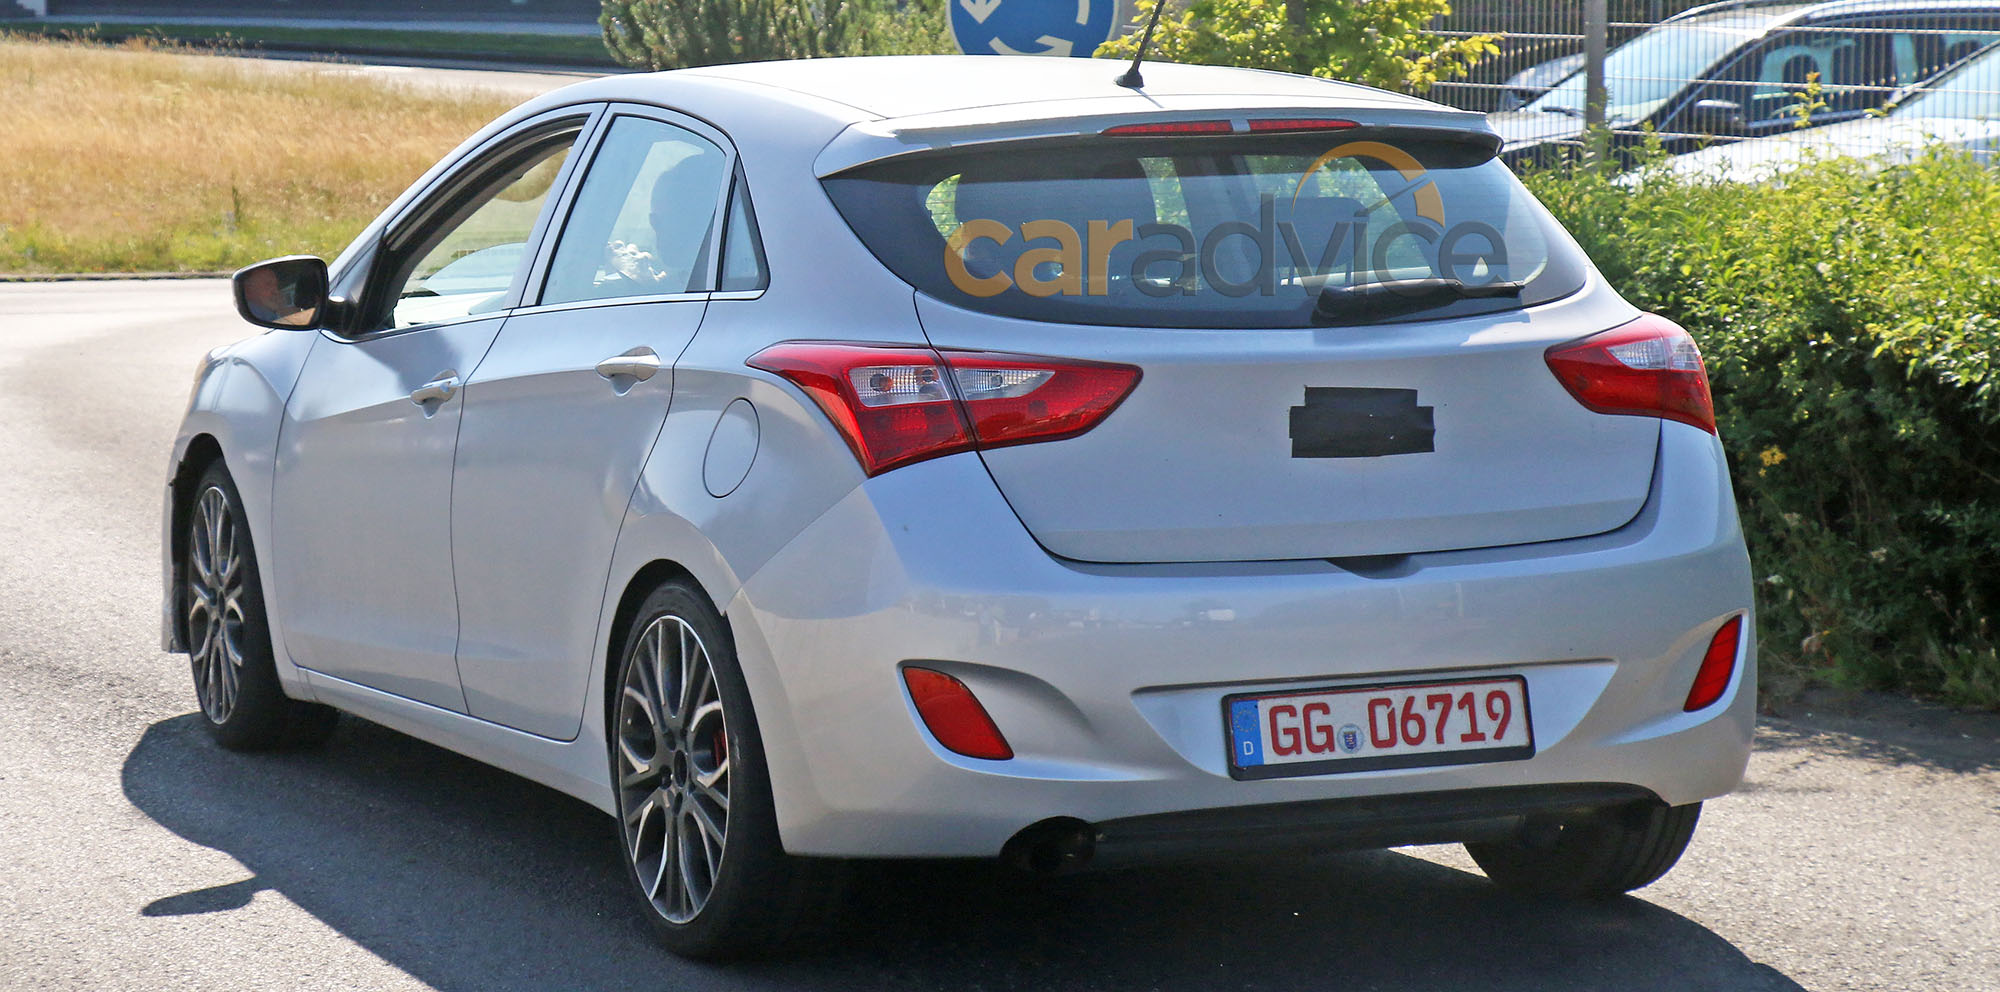 hyundai i30 n and tucson n performance models likely to head our way photos caradvice. Black Bedroom Furniture Sets. Home Design Ideas